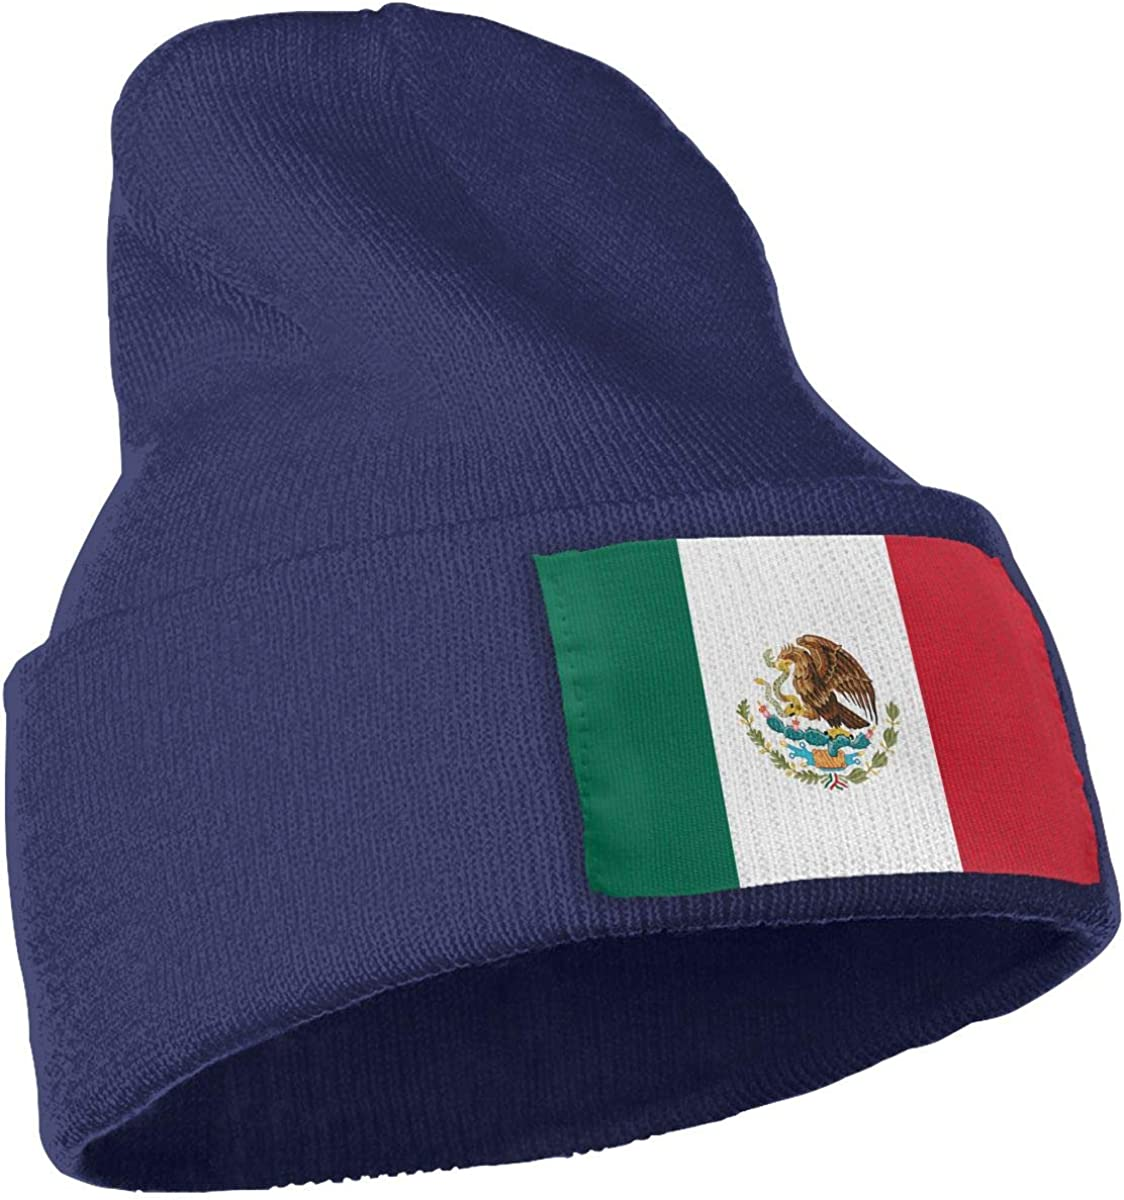 COLLJL-8 Men /& Women Flag of Mexico Outdoor Warm Knit Beanies Hat Soft Winter Knit Caps